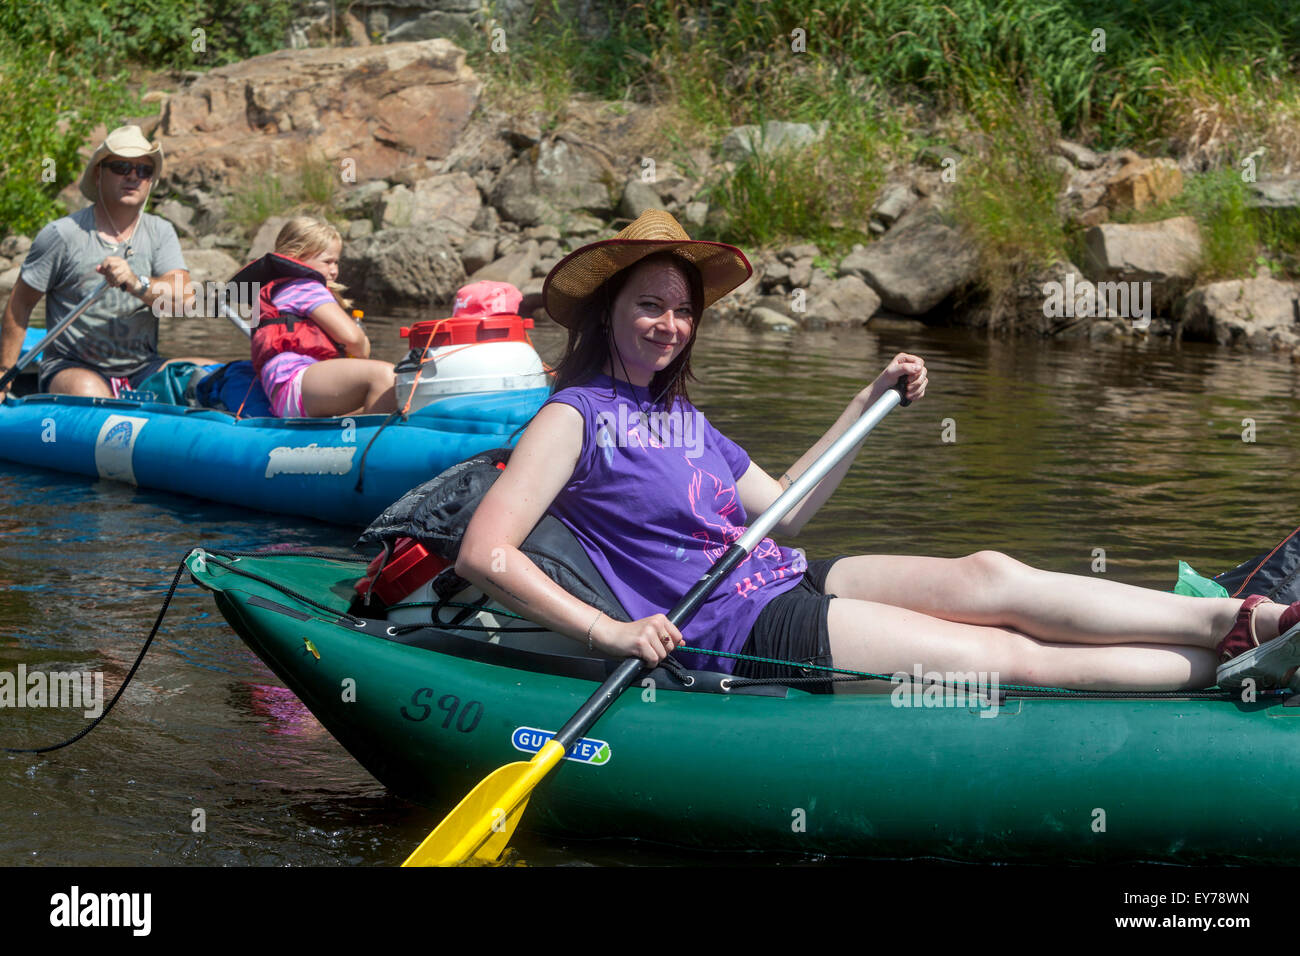 People going down the river Vltava, rafting, South Bohemia, Czech Republic - Stock Image